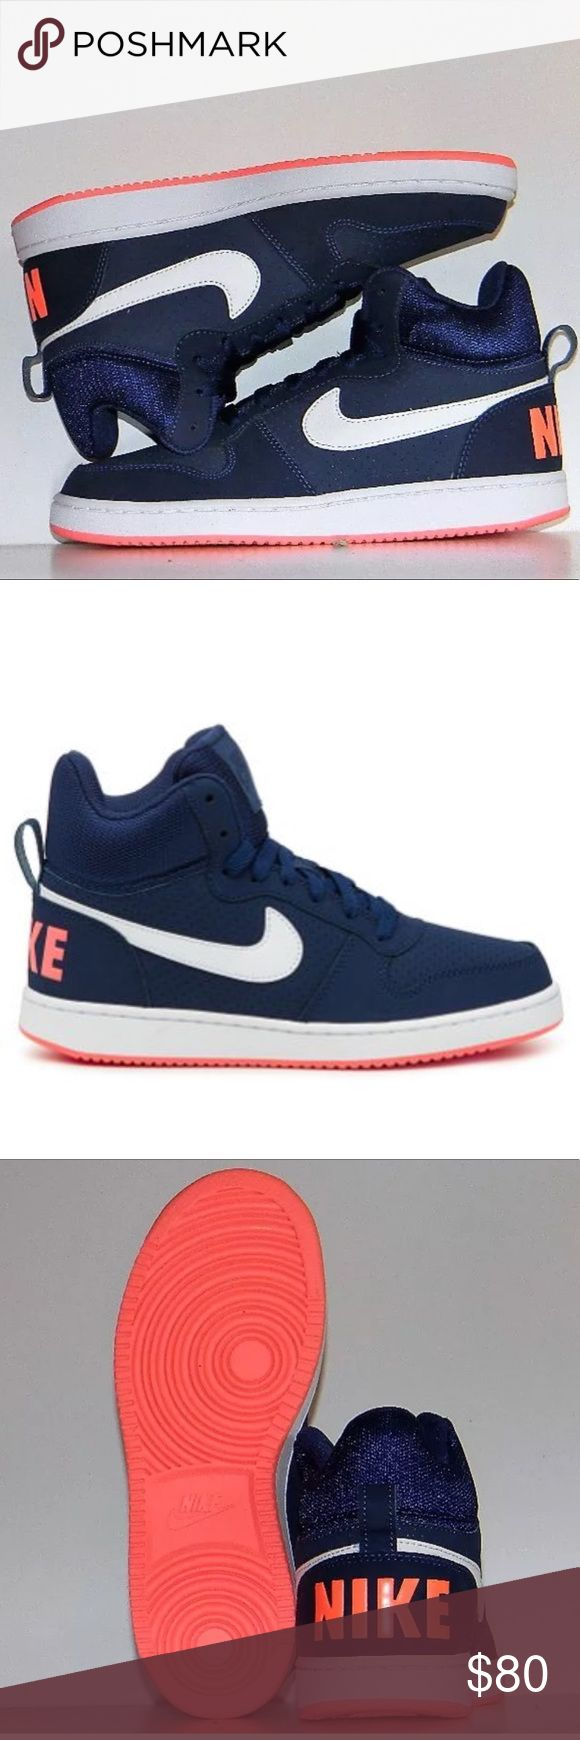 NIKE COURT BOROUGH MID ATHLETIC SNEAKERS NEW NIKE WOMEN'S COURT BOROUGH MID ATHLETIC SNEAKERS 844906 401 COLOR: BLUE/WHITE-PINK SIZE: 7.5 Designed for comfort, on-court look for off-court, everyday wear. The leather and unique textile upper offers durability, while the padded collar provides plush cushioning at the ankle. The mesh tongue helps to enhance breathability, and the rubber outsole provides optimal traction. Upgrade your street-style look with the Court Borough casual shoe. Nike…